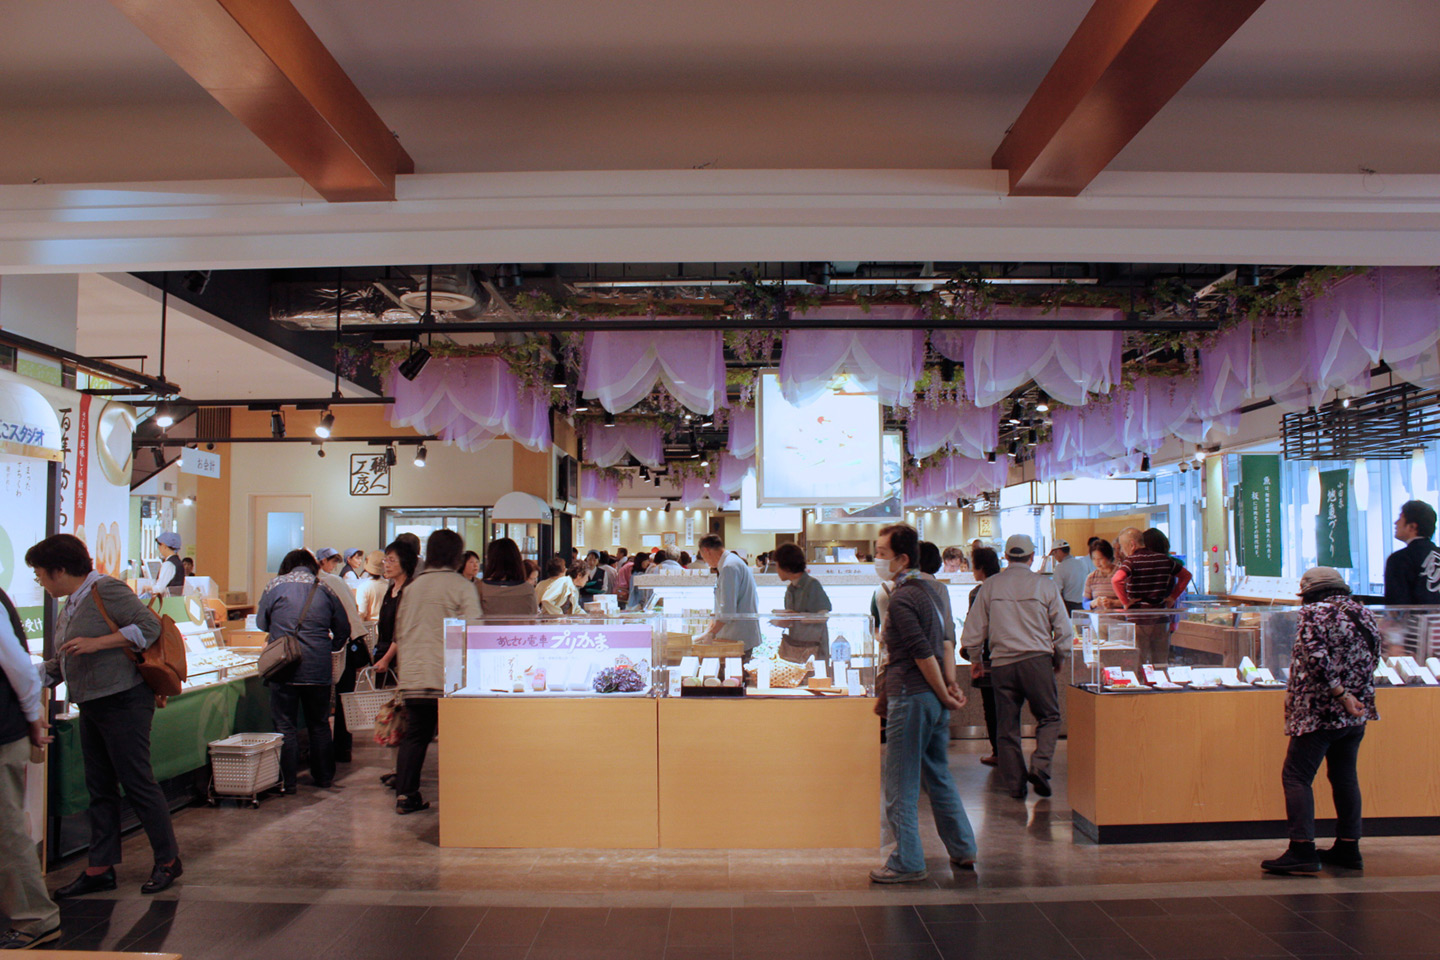 people browsing the displays at the kamaboko museum